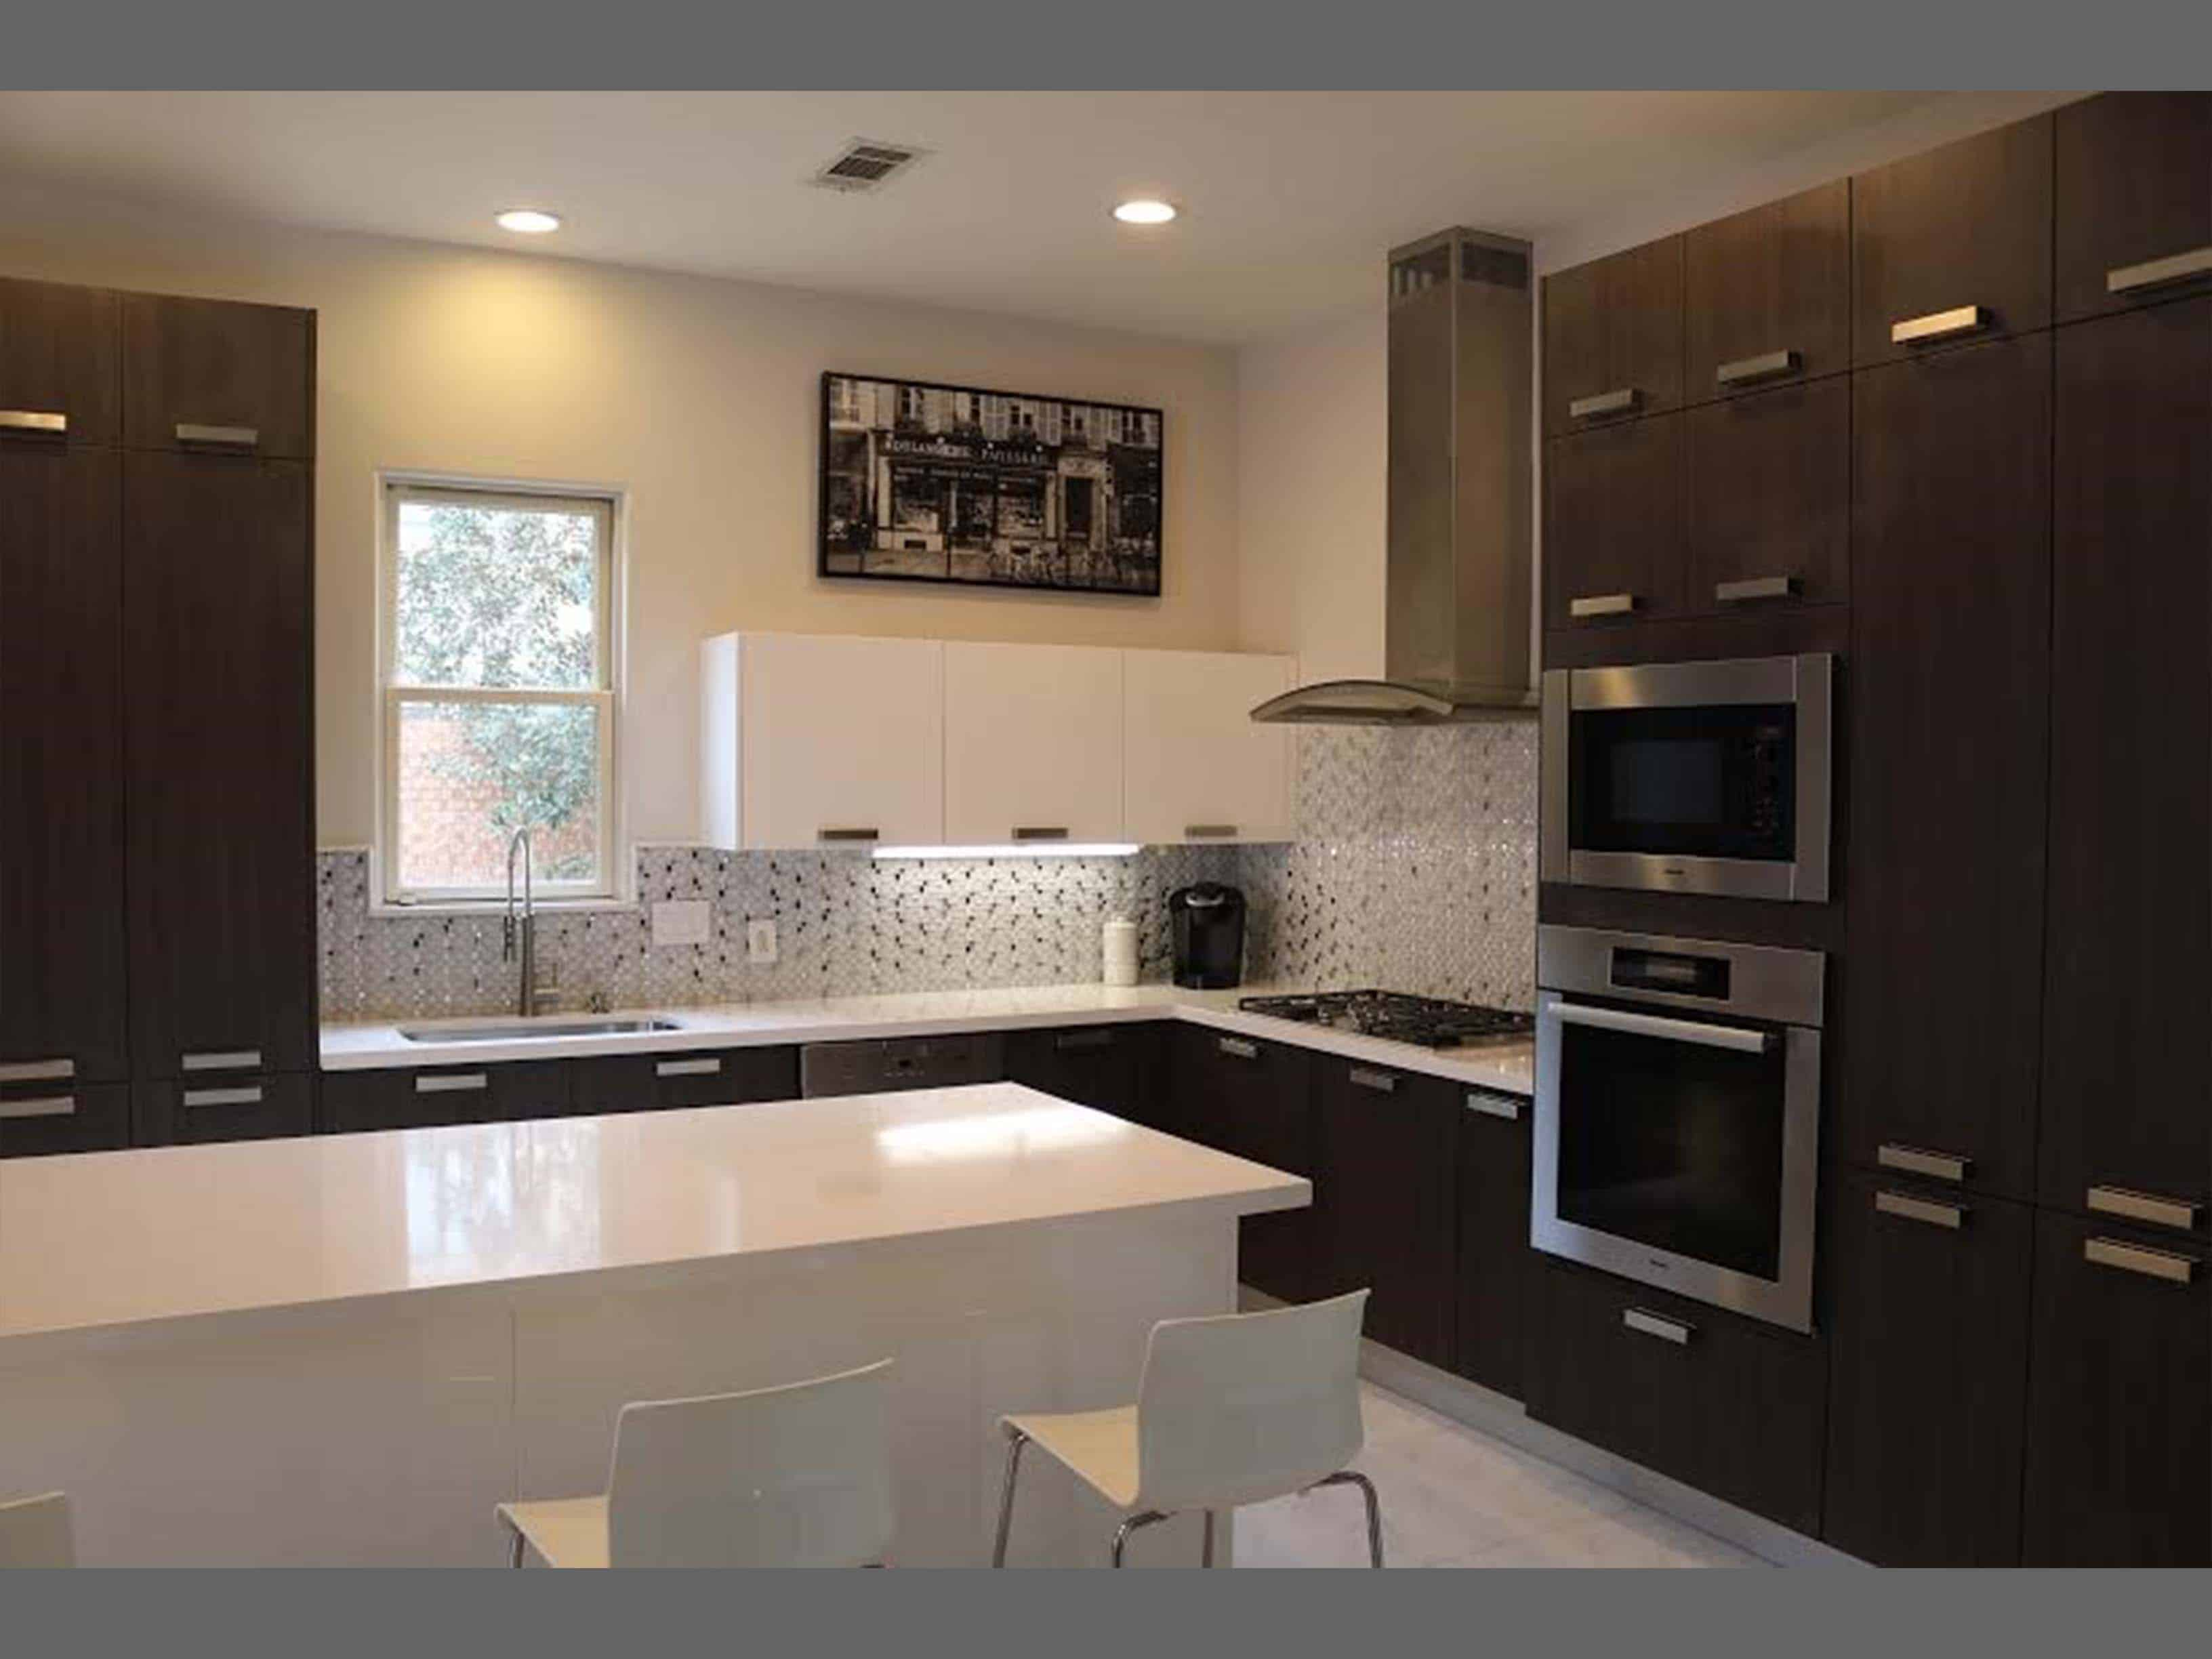 Elegant Kitchen - Royal Oaks Country Club_5